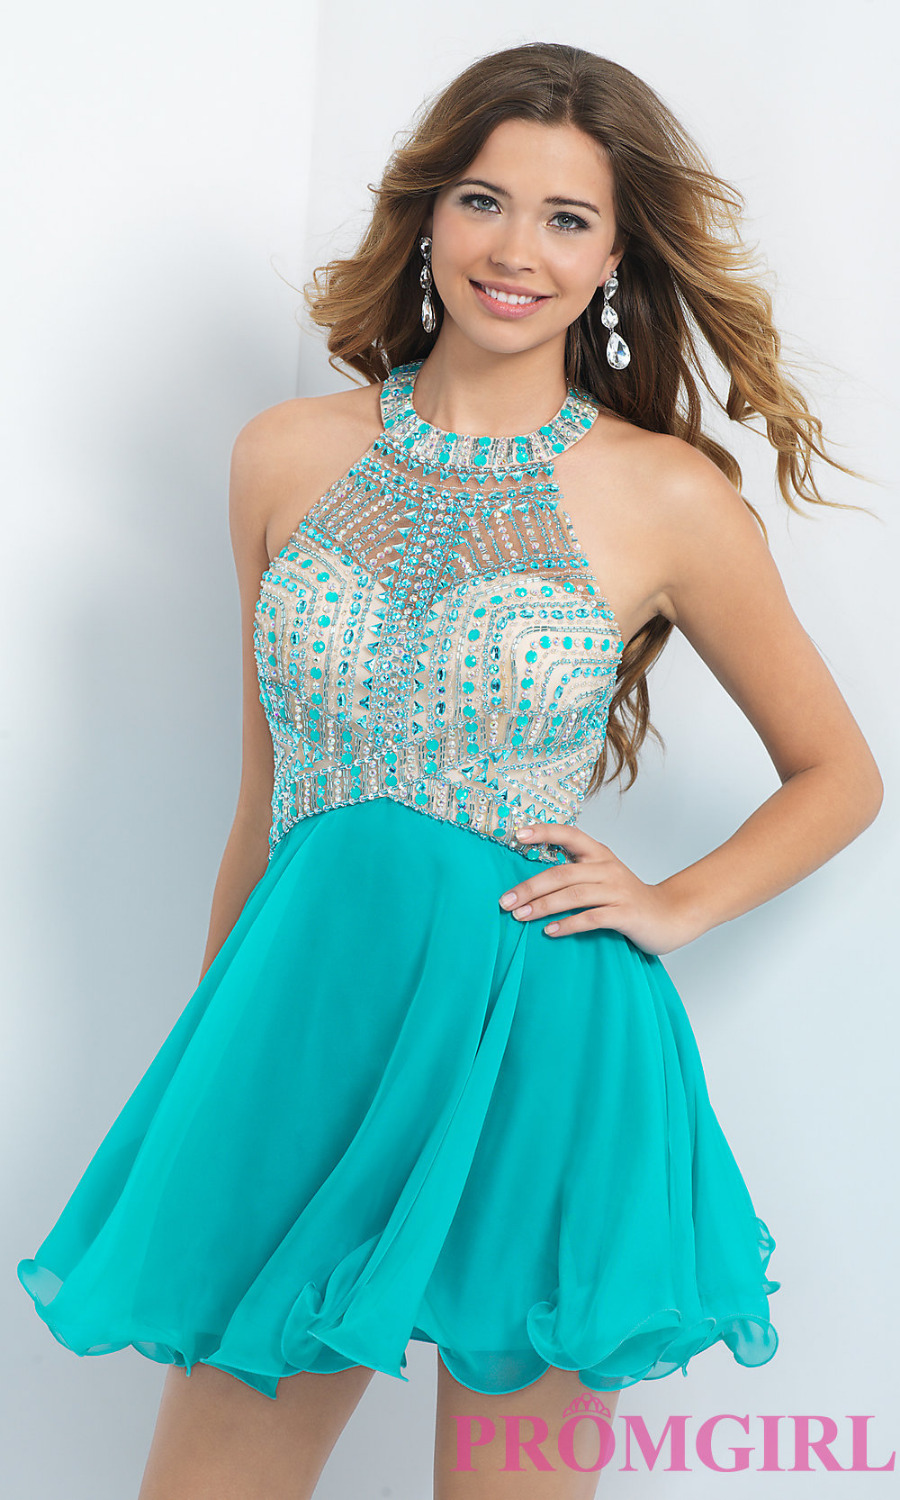 Compare Prices on Turquoise Homecoming Dresses- Online Shopping ...